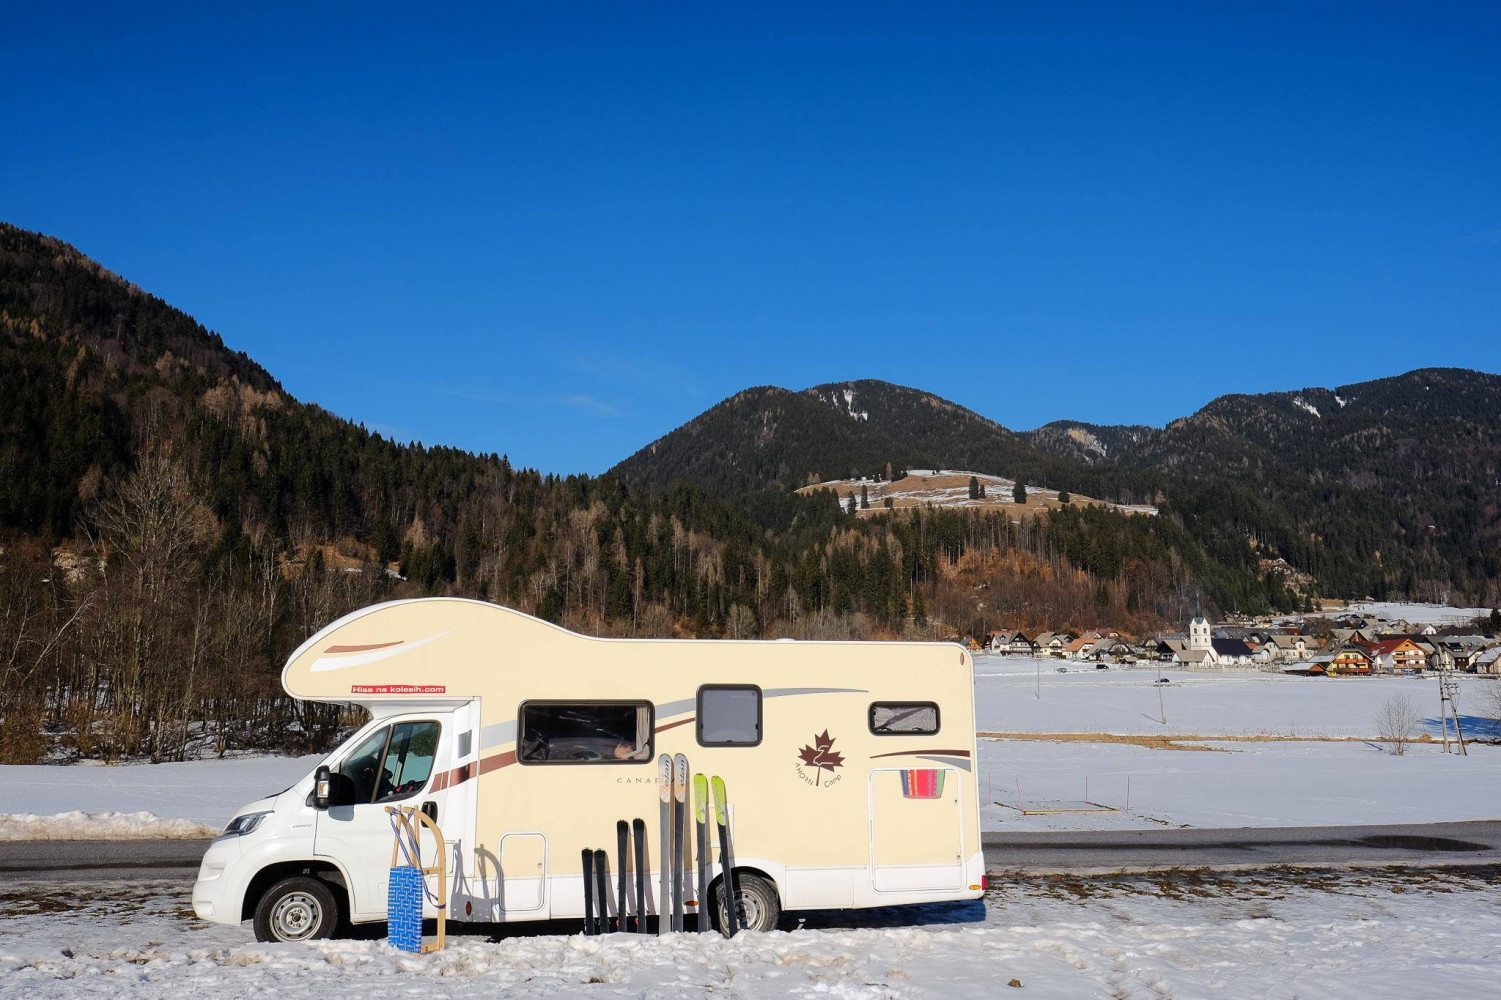 Camping in the winter season by the ski slope.